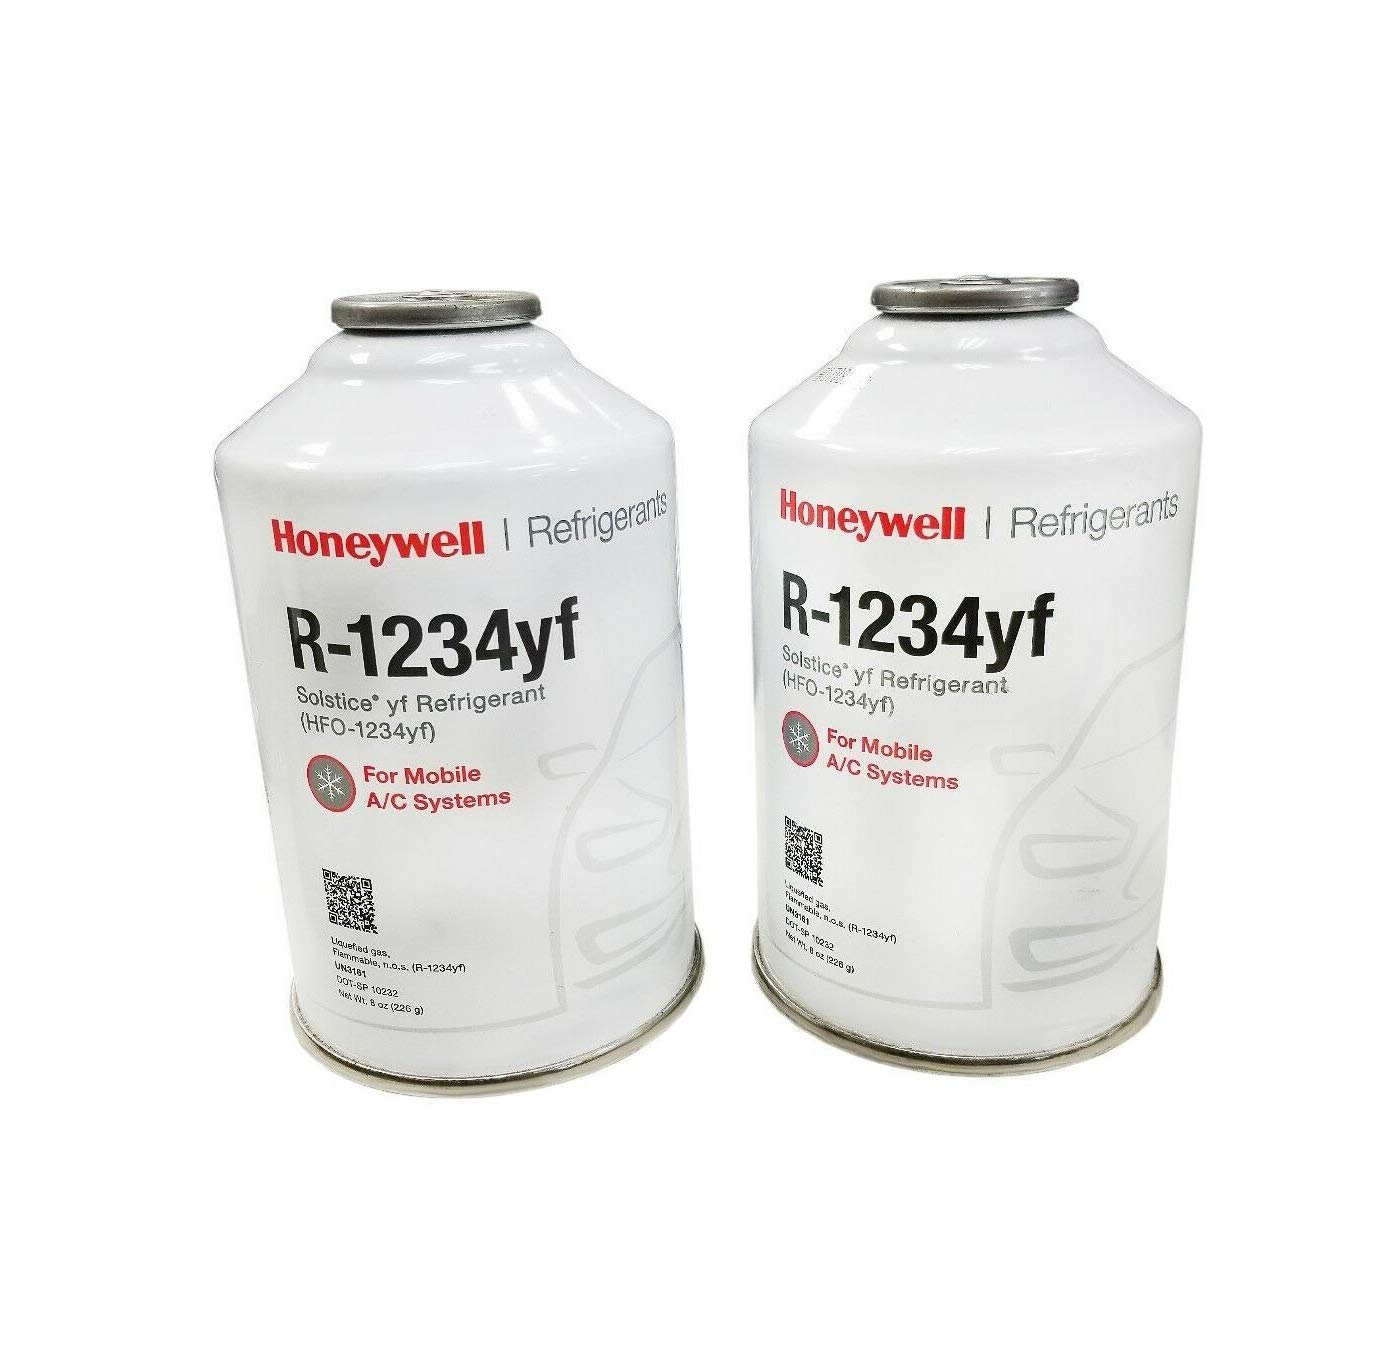 Pair Cans of R-1234YF R1234yf Refrigerant 7.99ounce Compatible w/SoIstice Quick Delivery